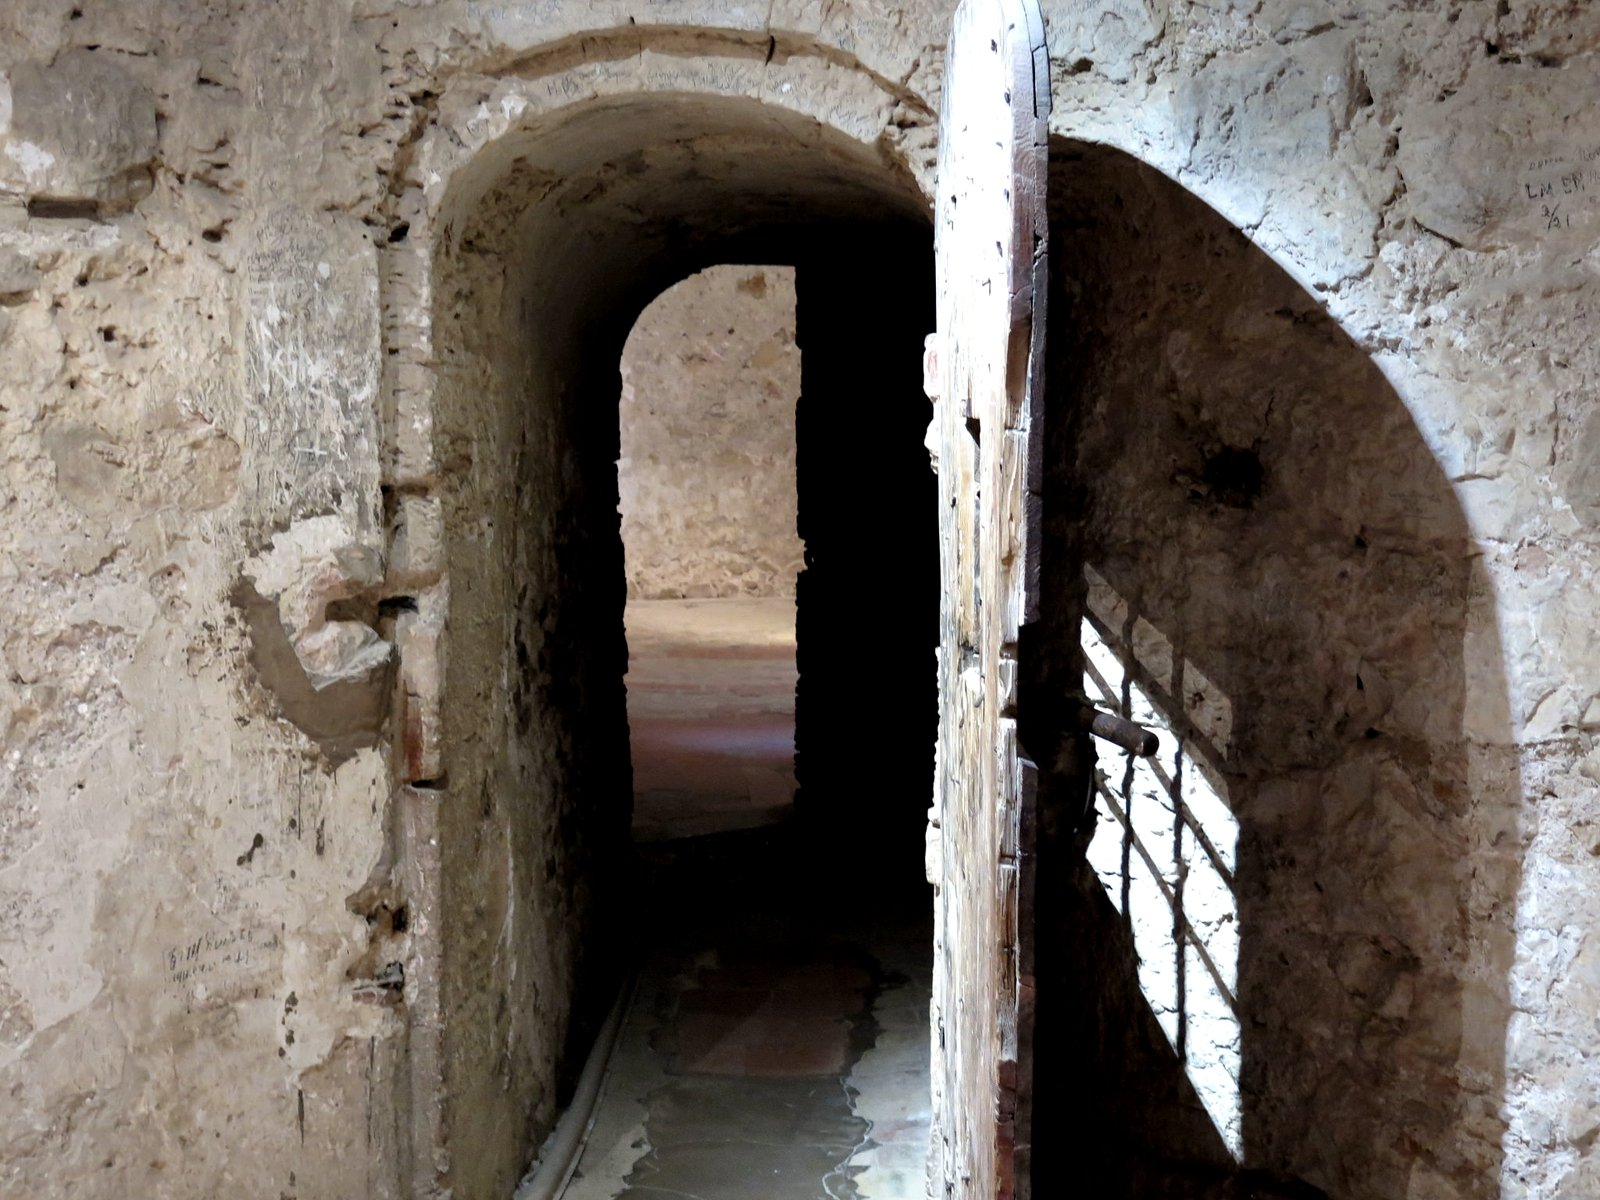 How to visit the prison cell of The Count of Monte Cristo in Marseille